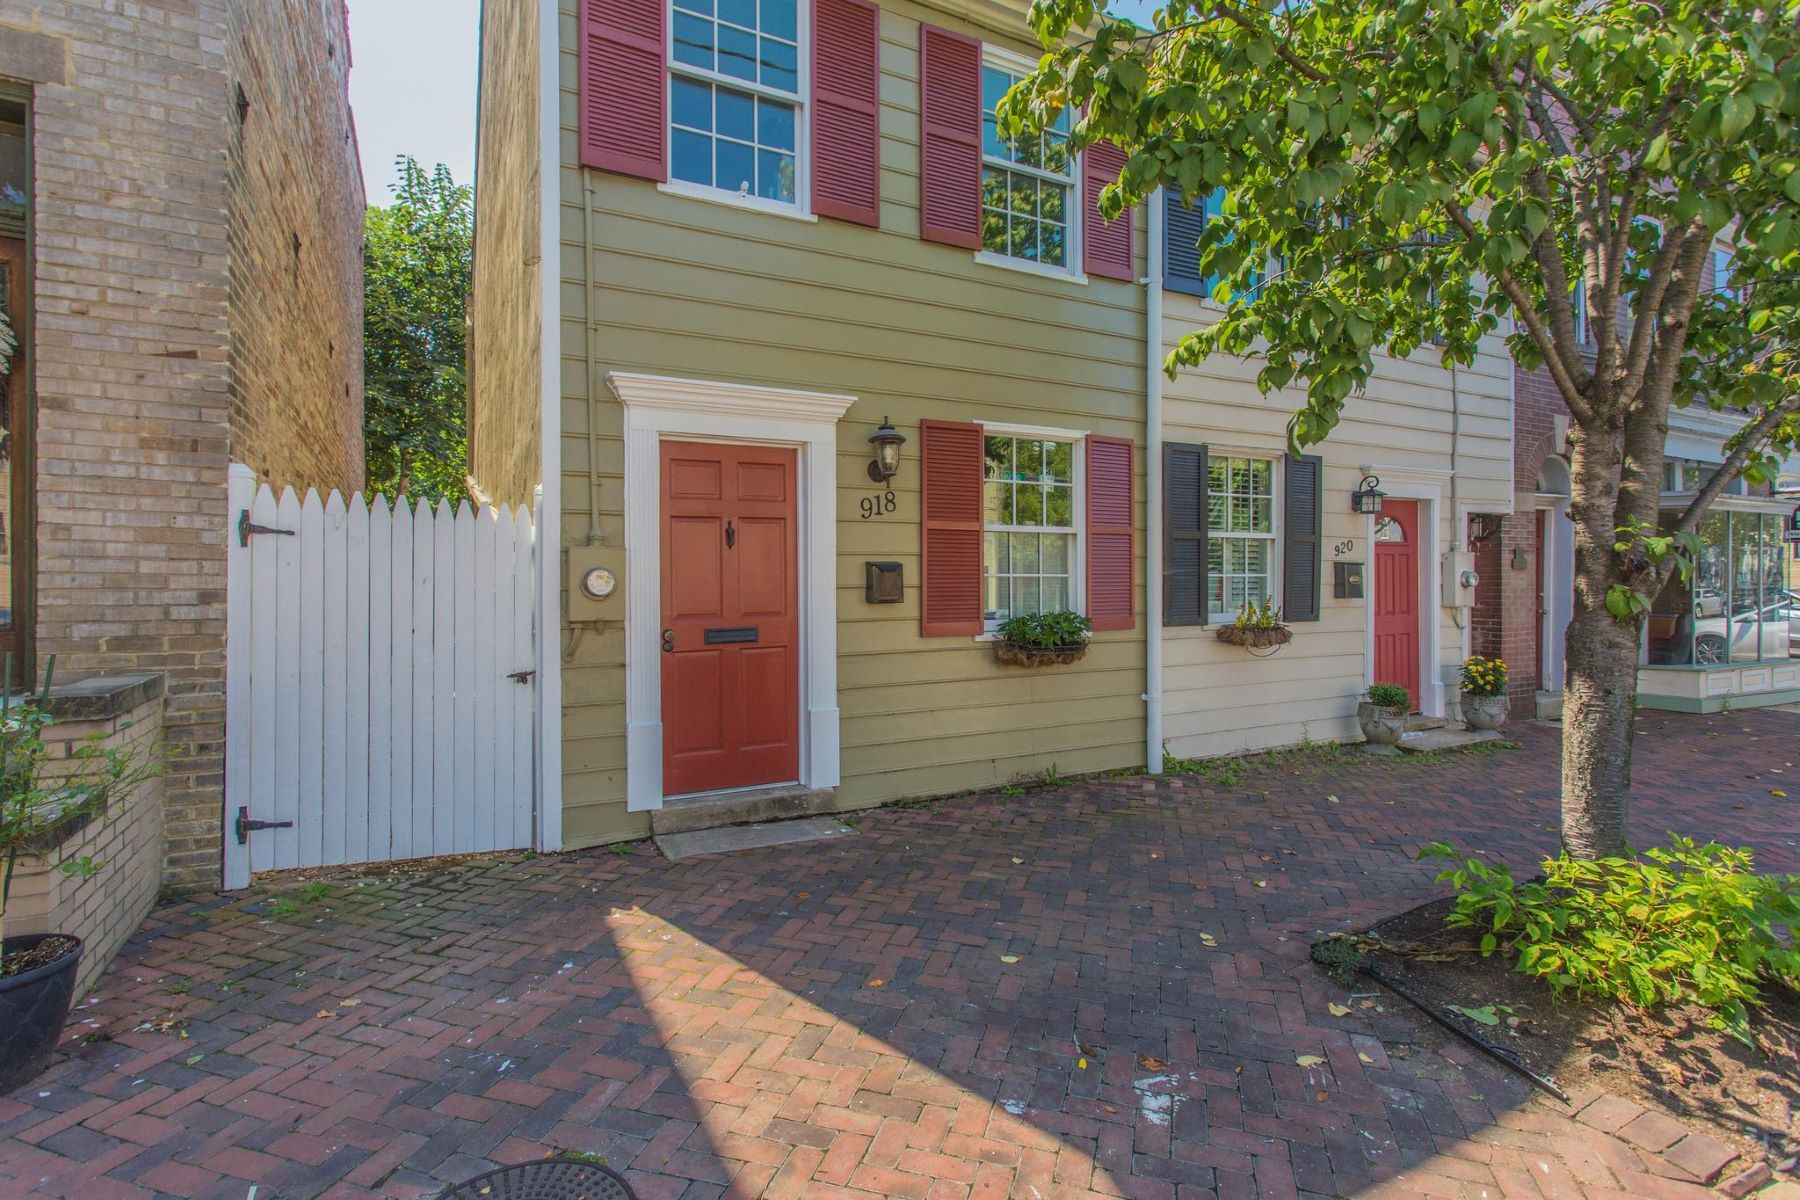 Single Family Home for Sale at 918 Queen St 918 Queen St Alexandria, Virginia 22314 United States